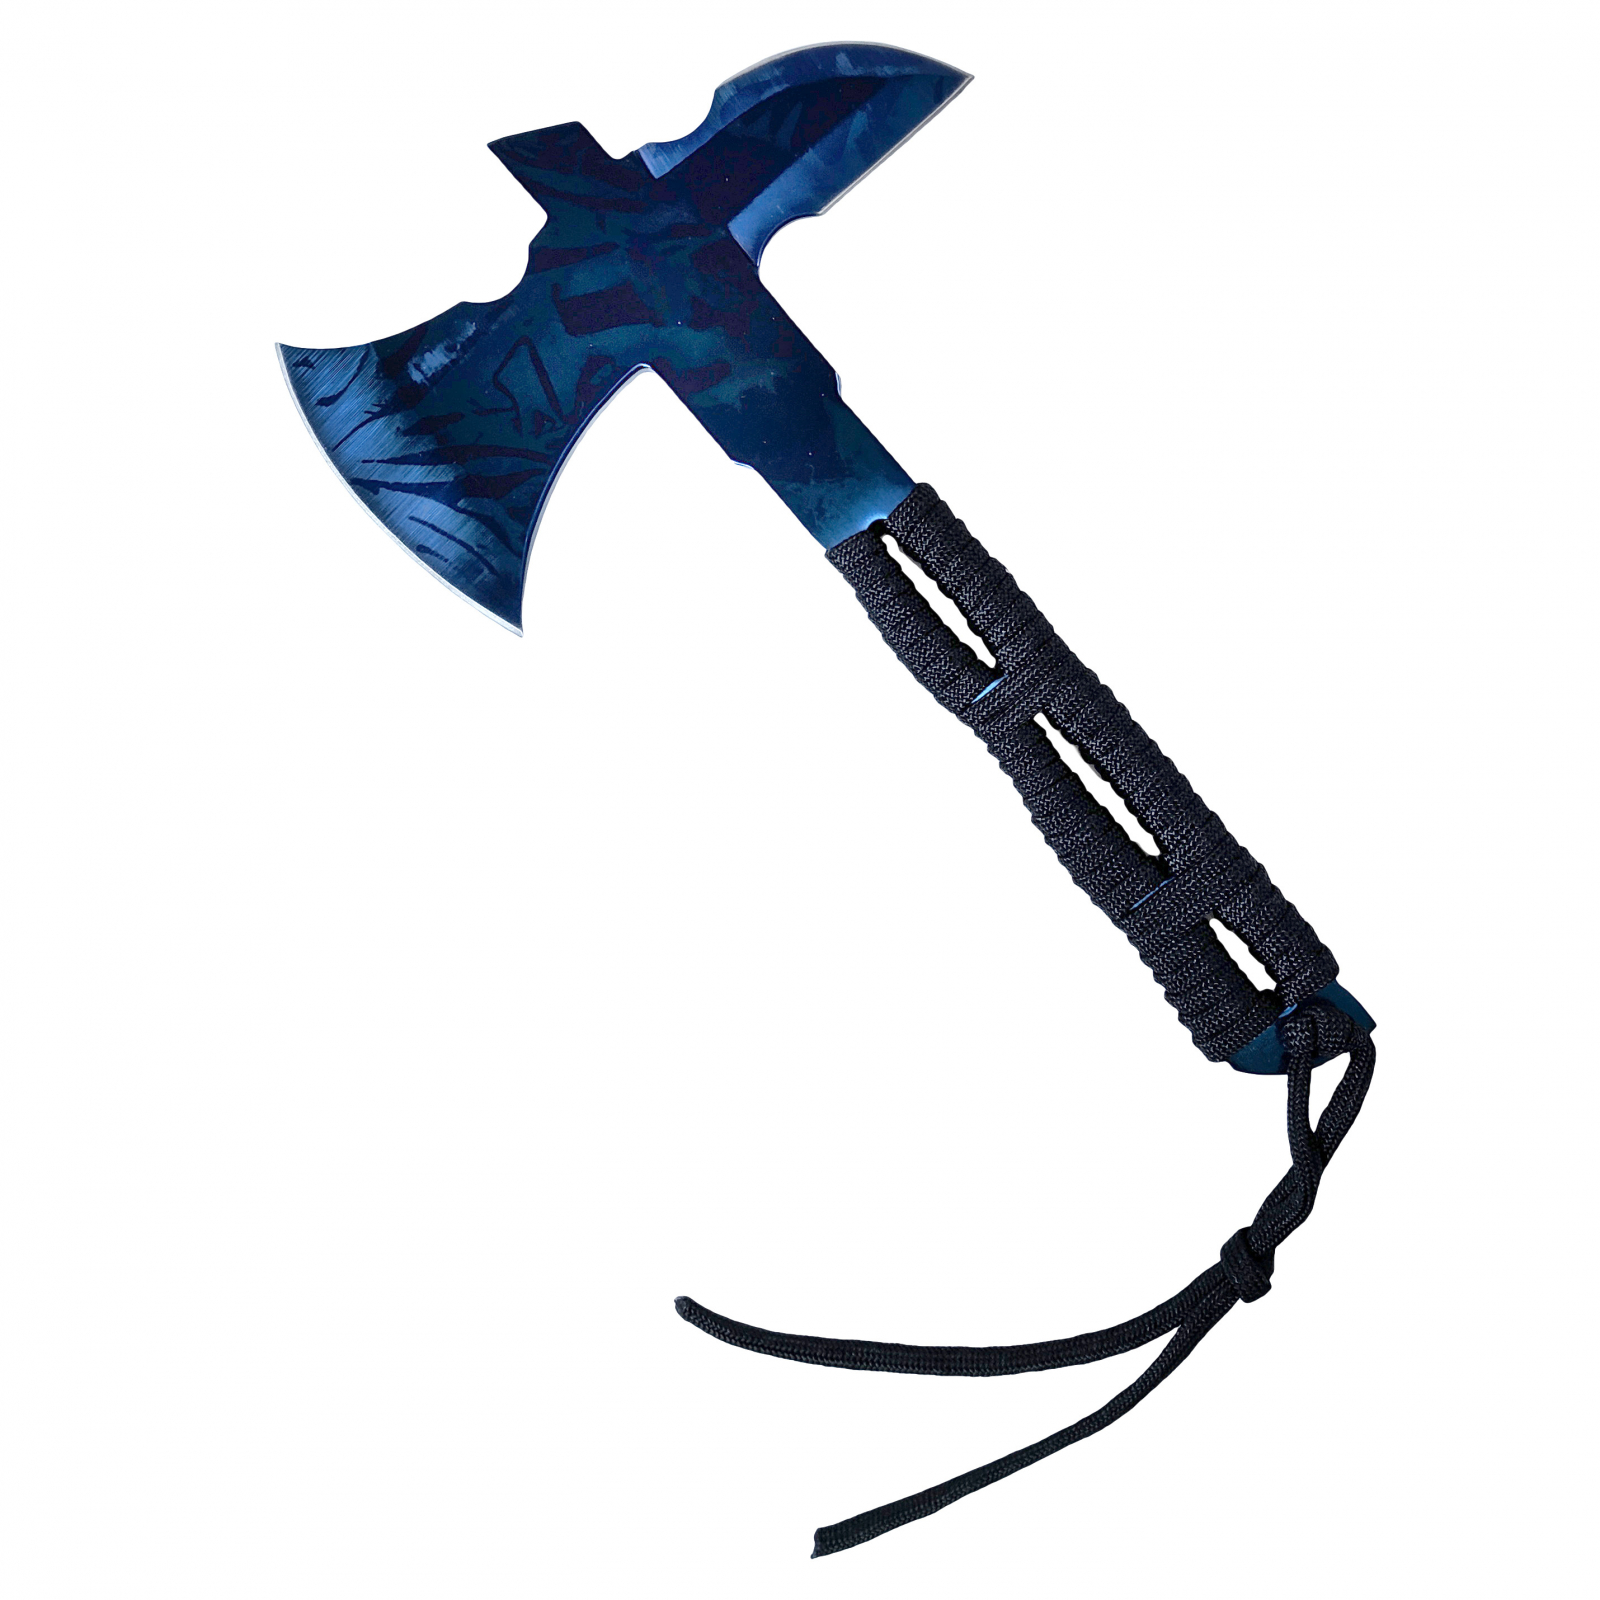 ASR Outdoor 8 In Throwing Axe Blue Finish Fixed Blade